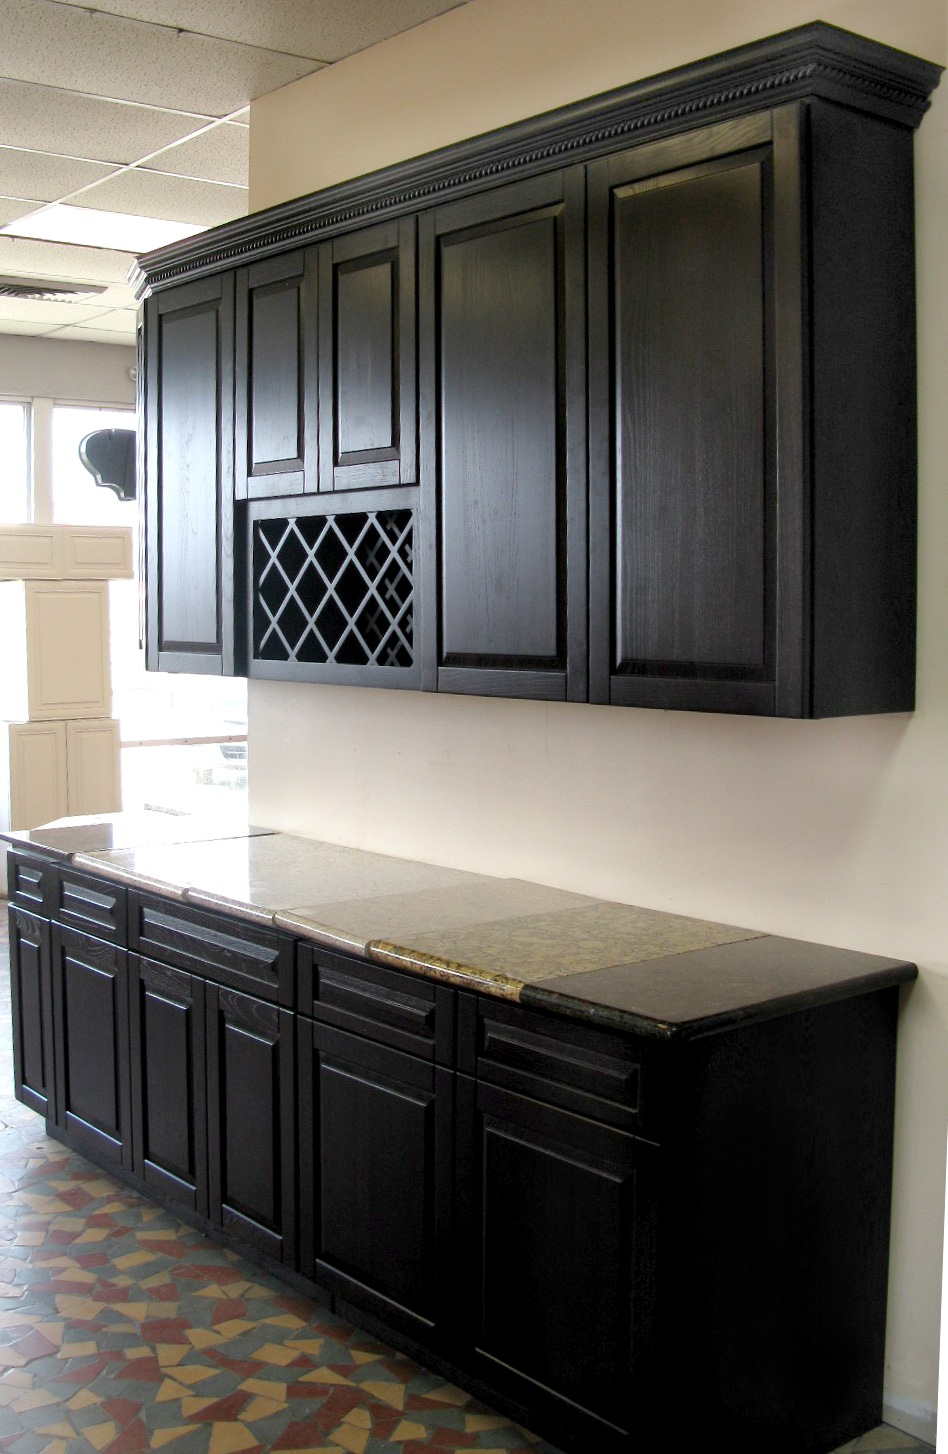 Cabinets for kitchen photos black kitchen cabinets - Black kitchen cabinets ideas ...